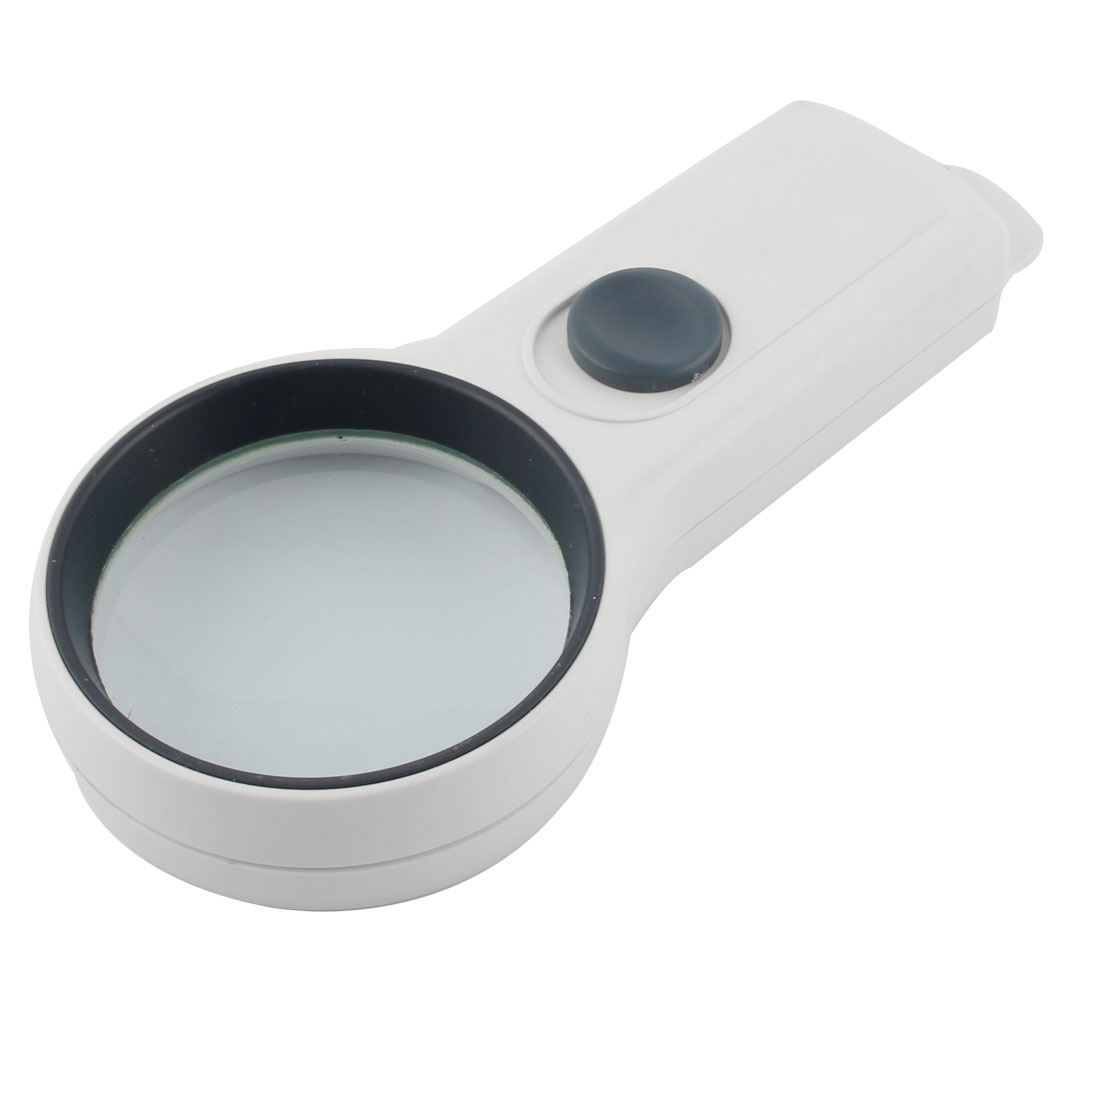 Plastic Frame Round Shape Handheld LED Light Illuminated Magnifier 75mm Dia